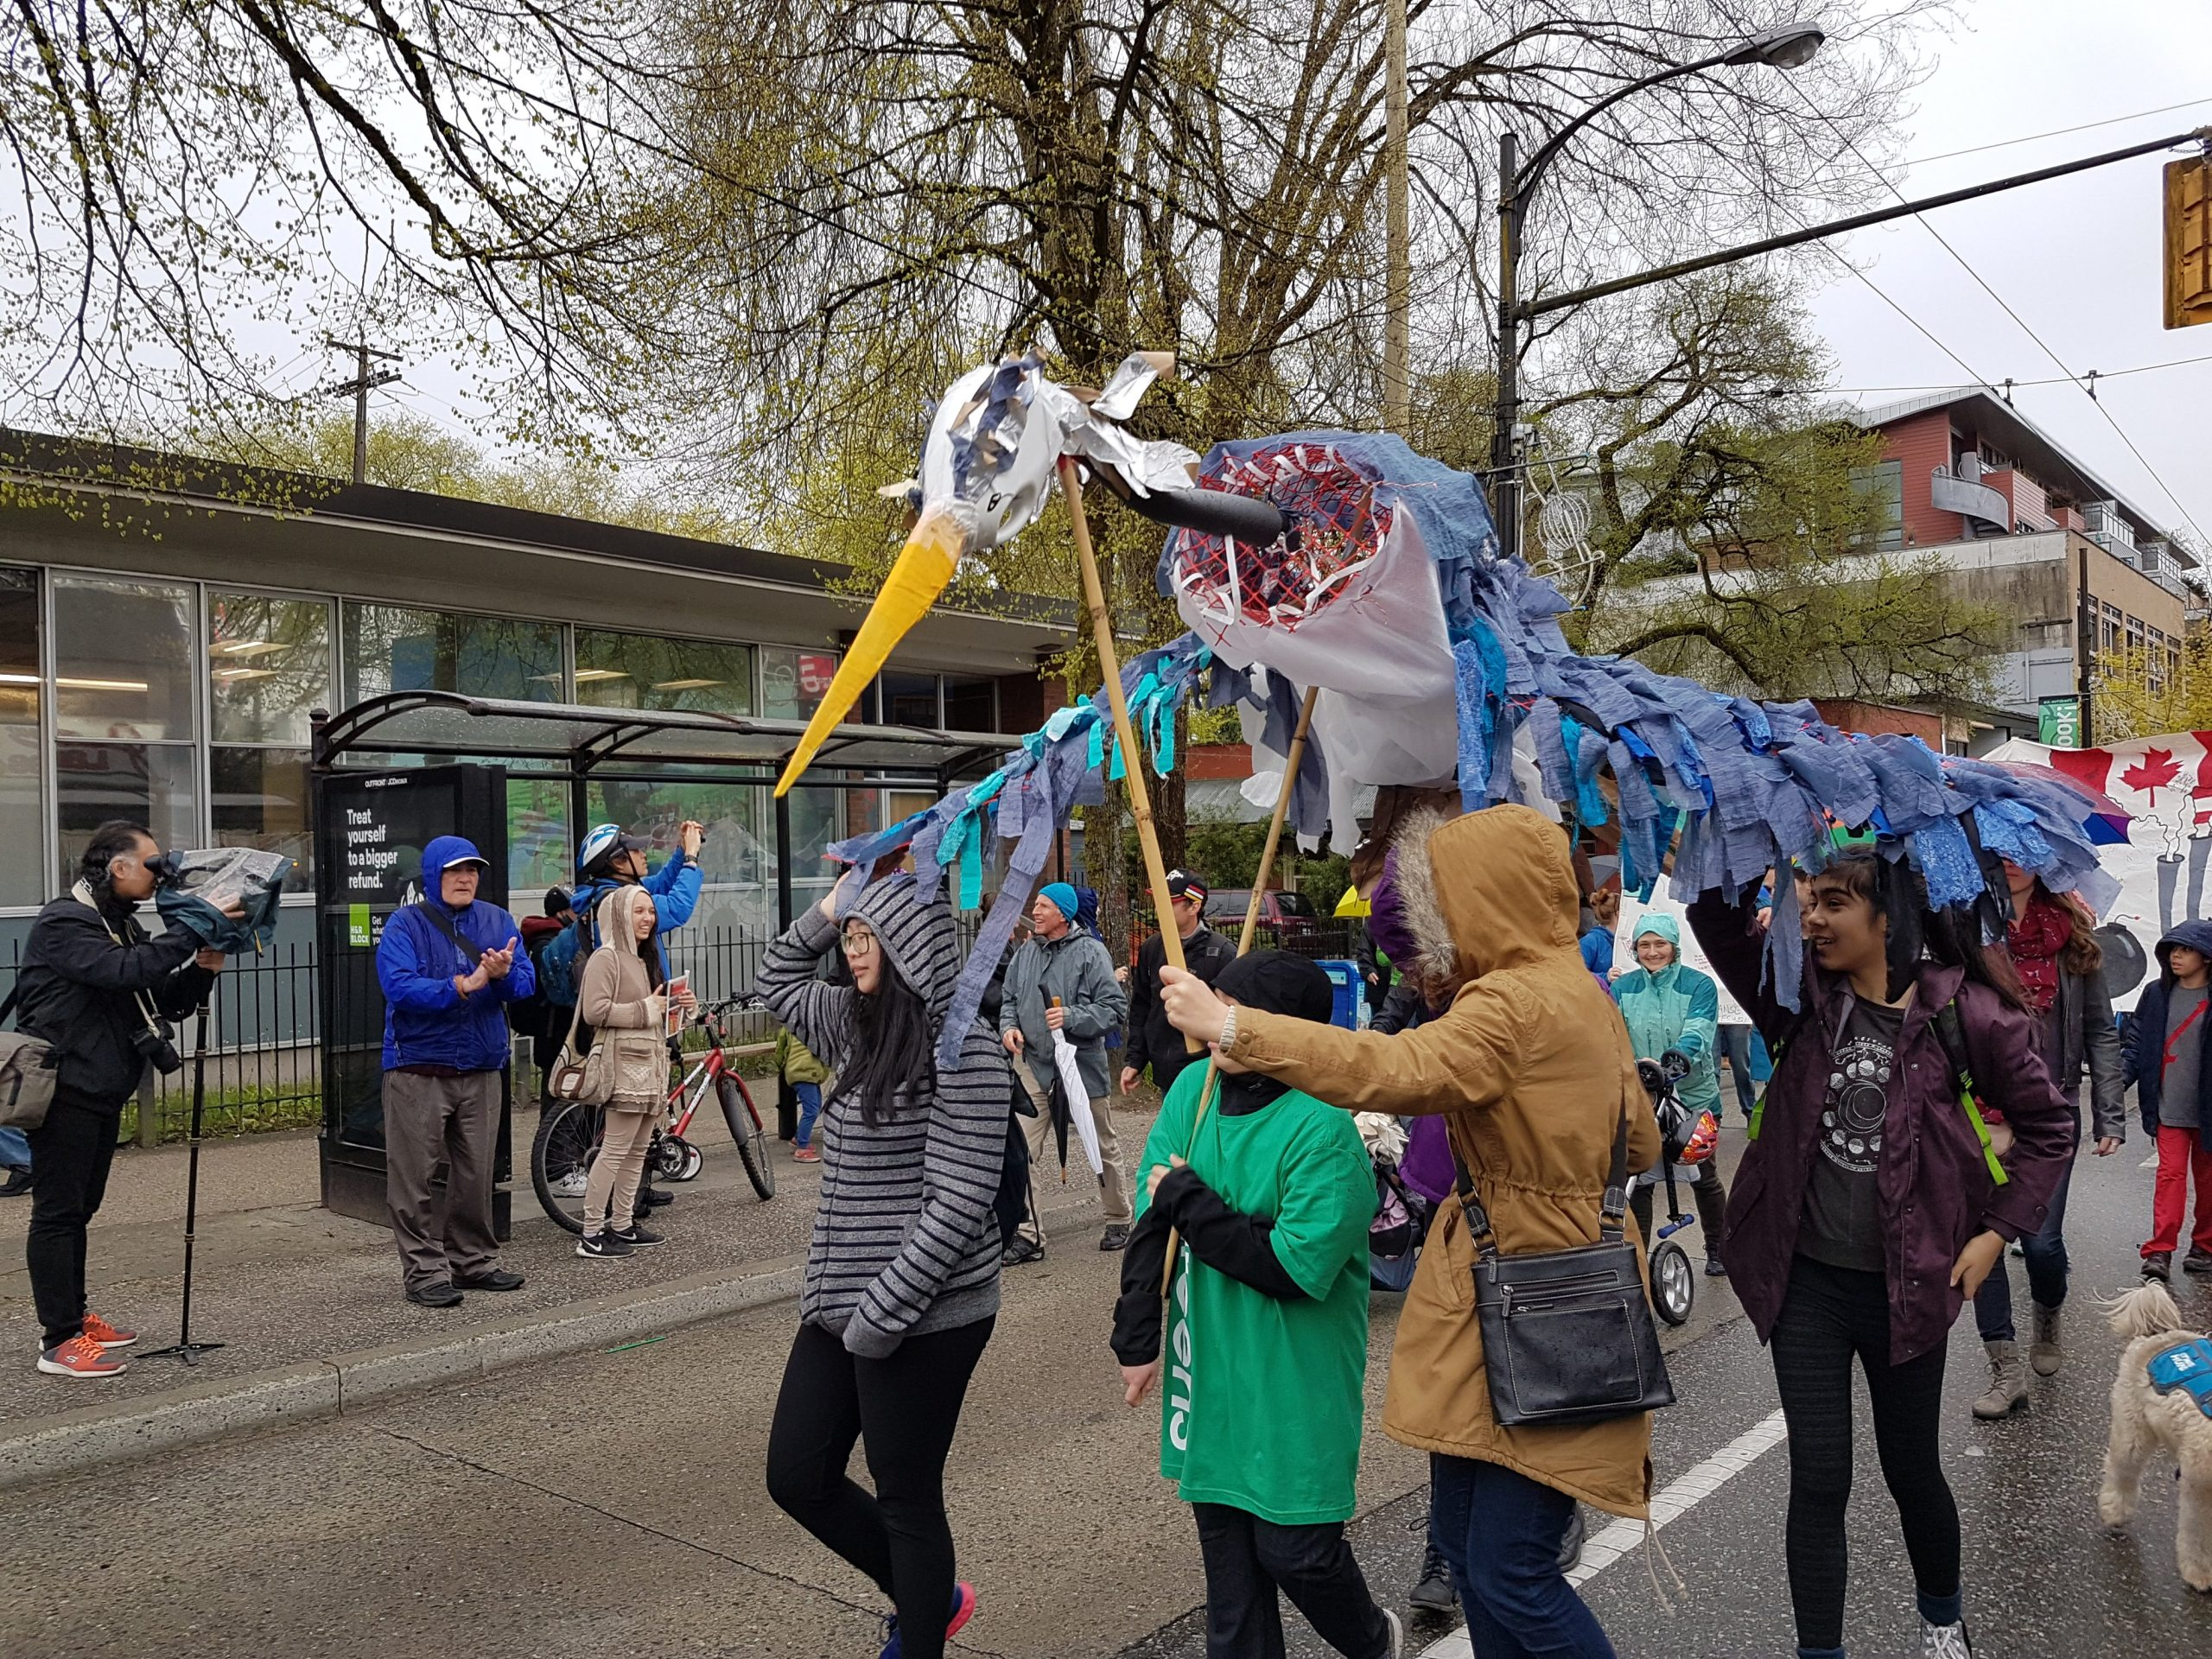 Windermere youth carrying puppetry at the Earth Day Parade on Commercial Dr (Apr 2017) - Photo by Bea Miller